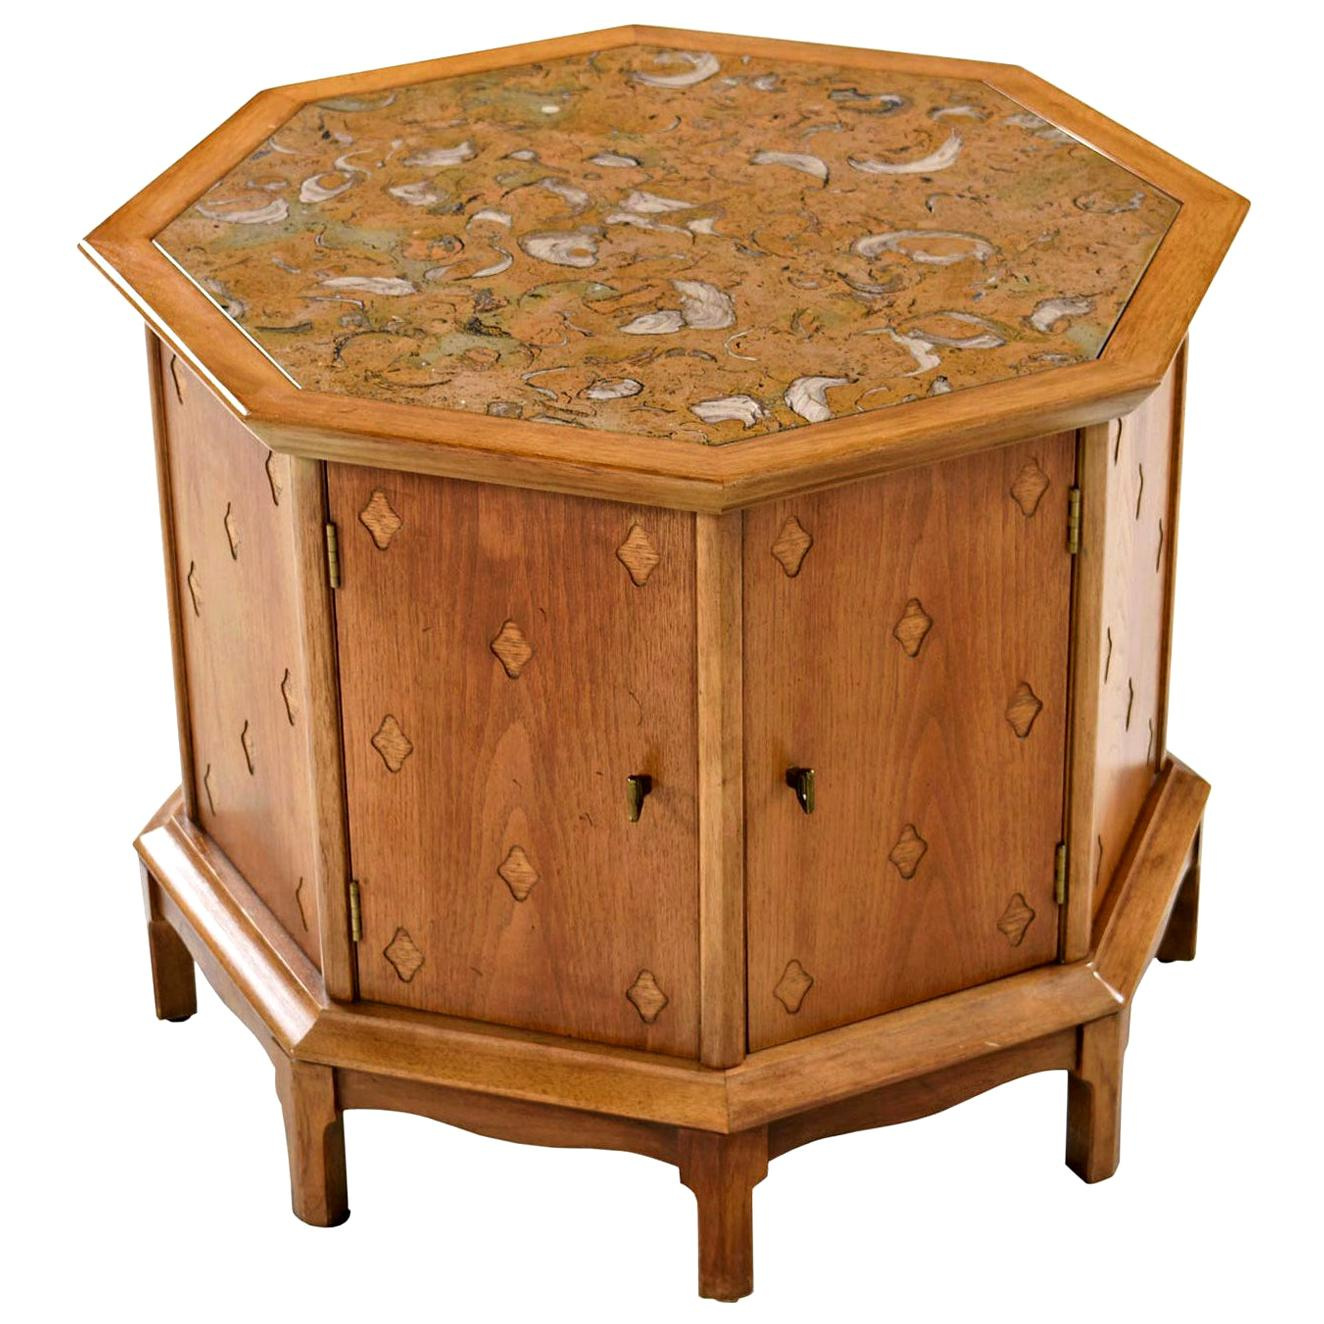 Horizon By Thomasville Moroccan Style Abstract Stone Top Octagon Commode Cabinet